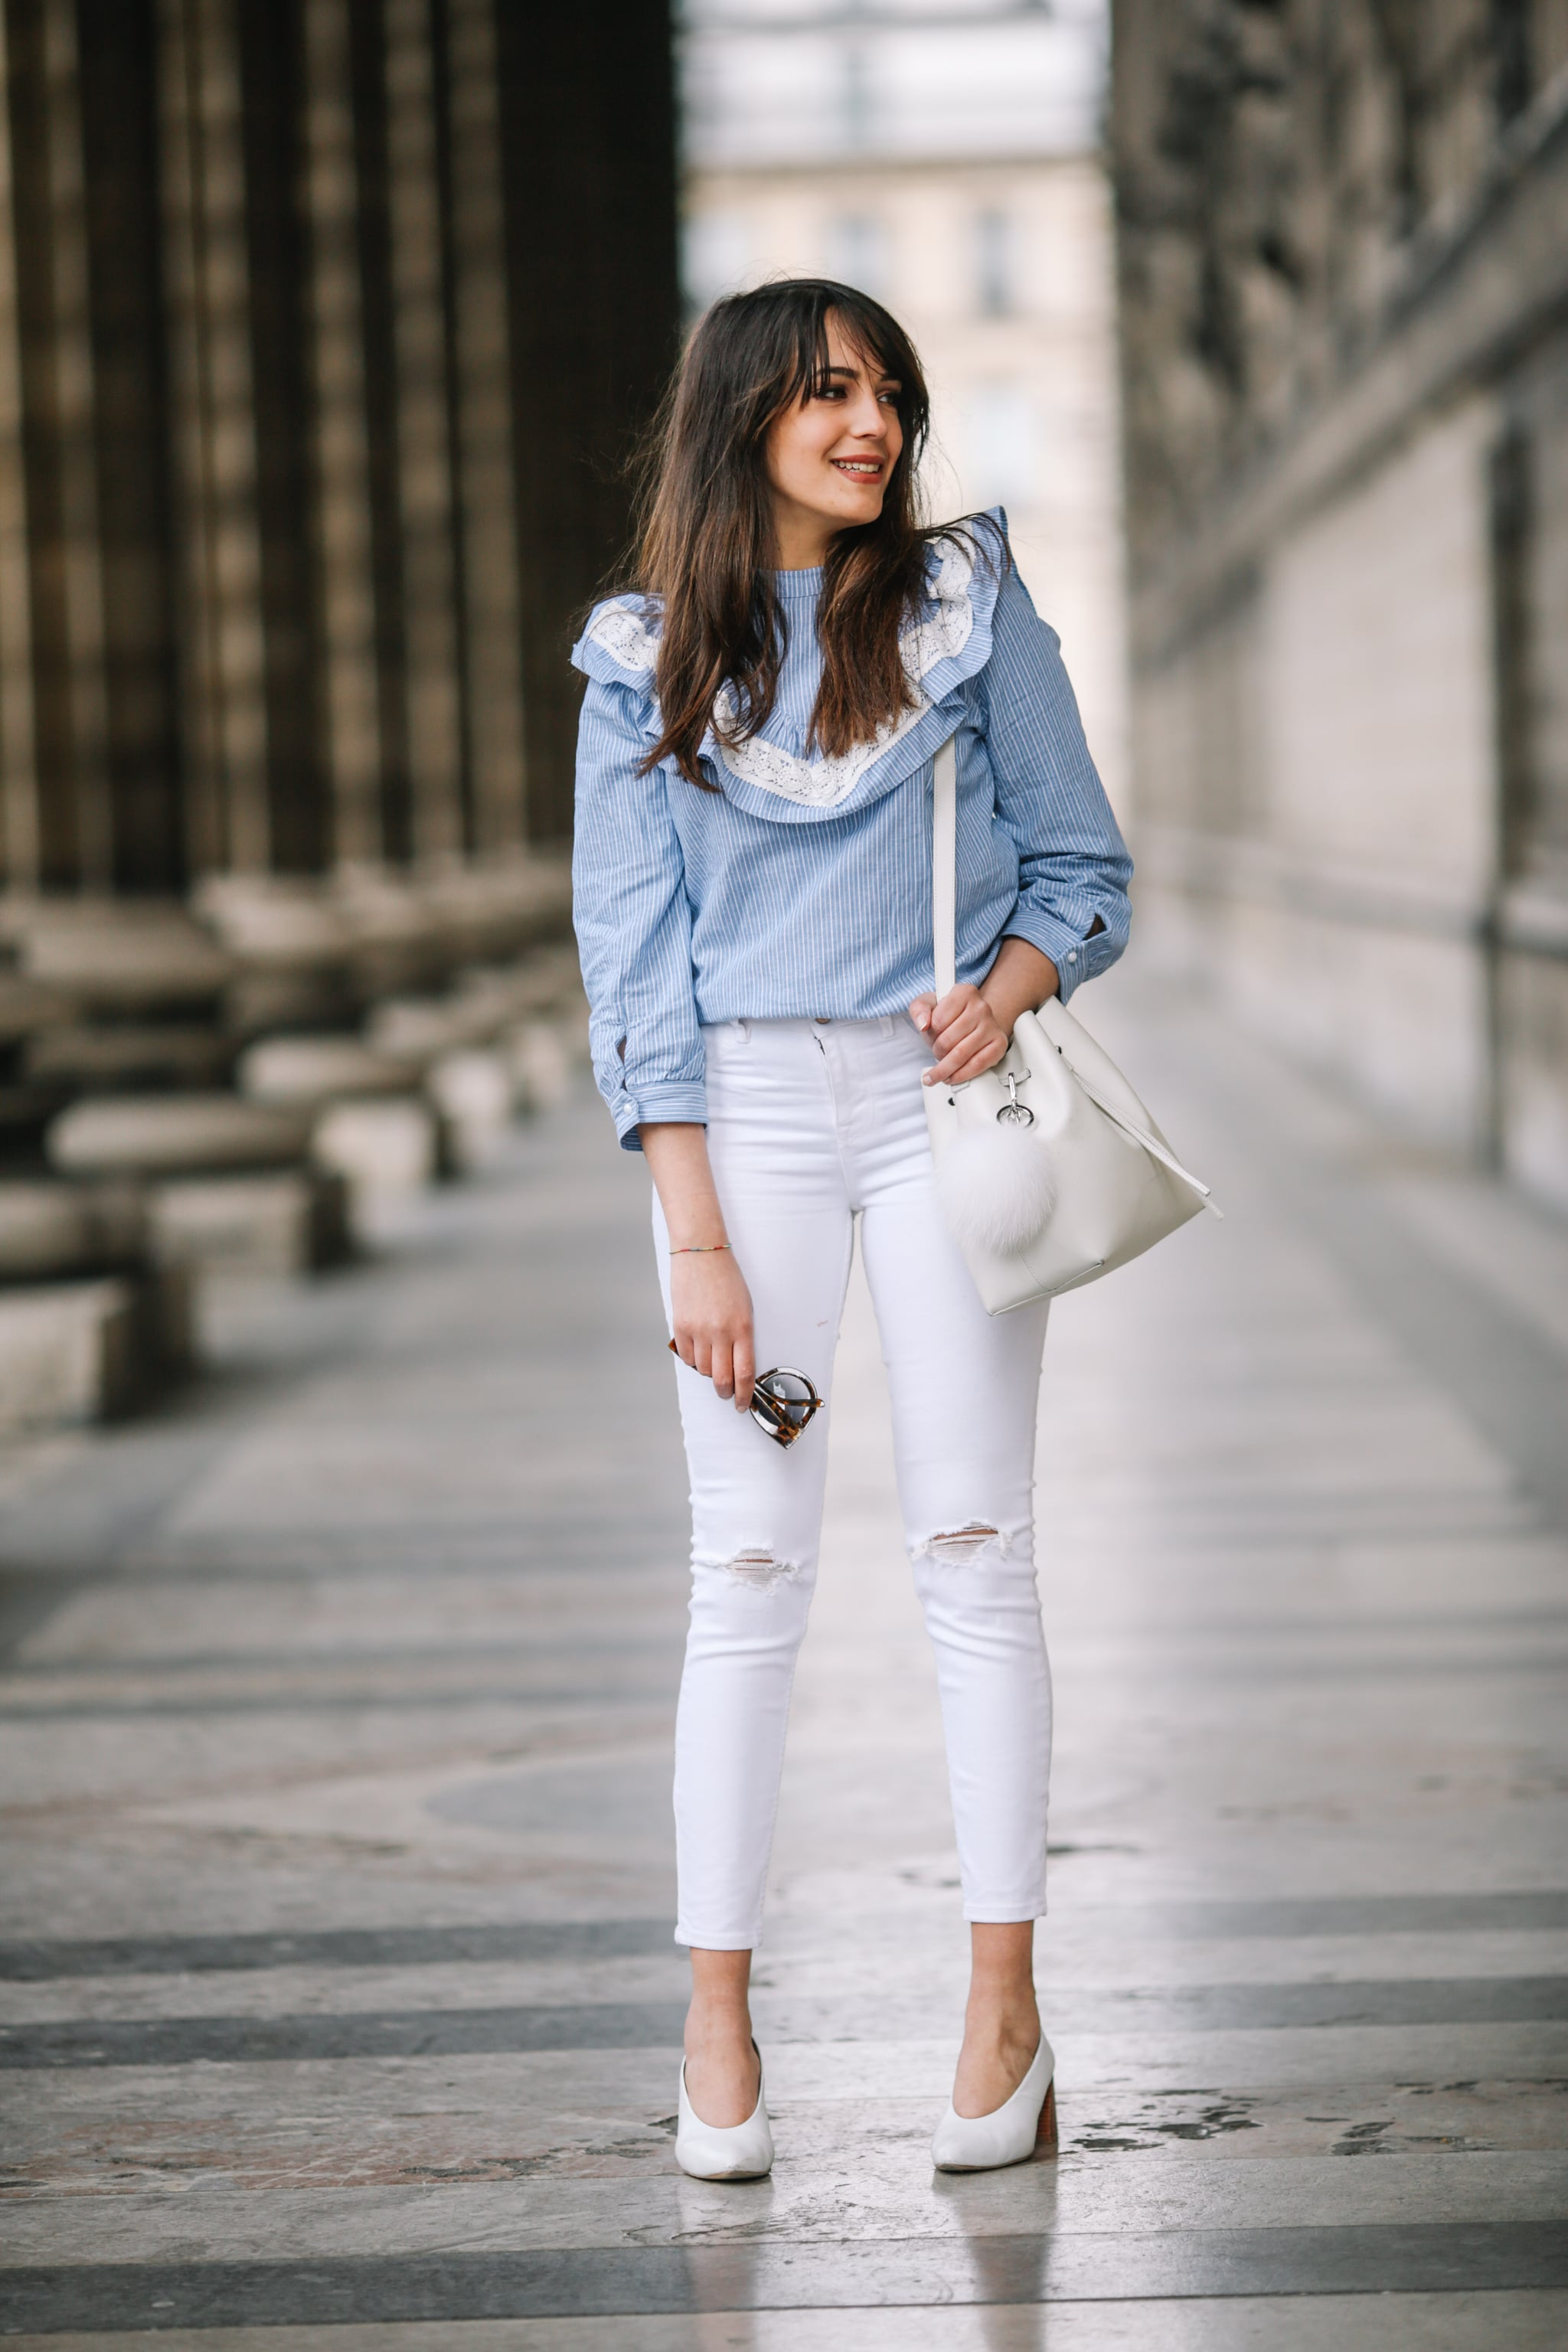 Embrace White Jeans Then Embrace White Shoes To Pair With Them 100 Summer Outfit Ideas That Are Big On Style Low On Effort Popsugar Fashion Photo 66